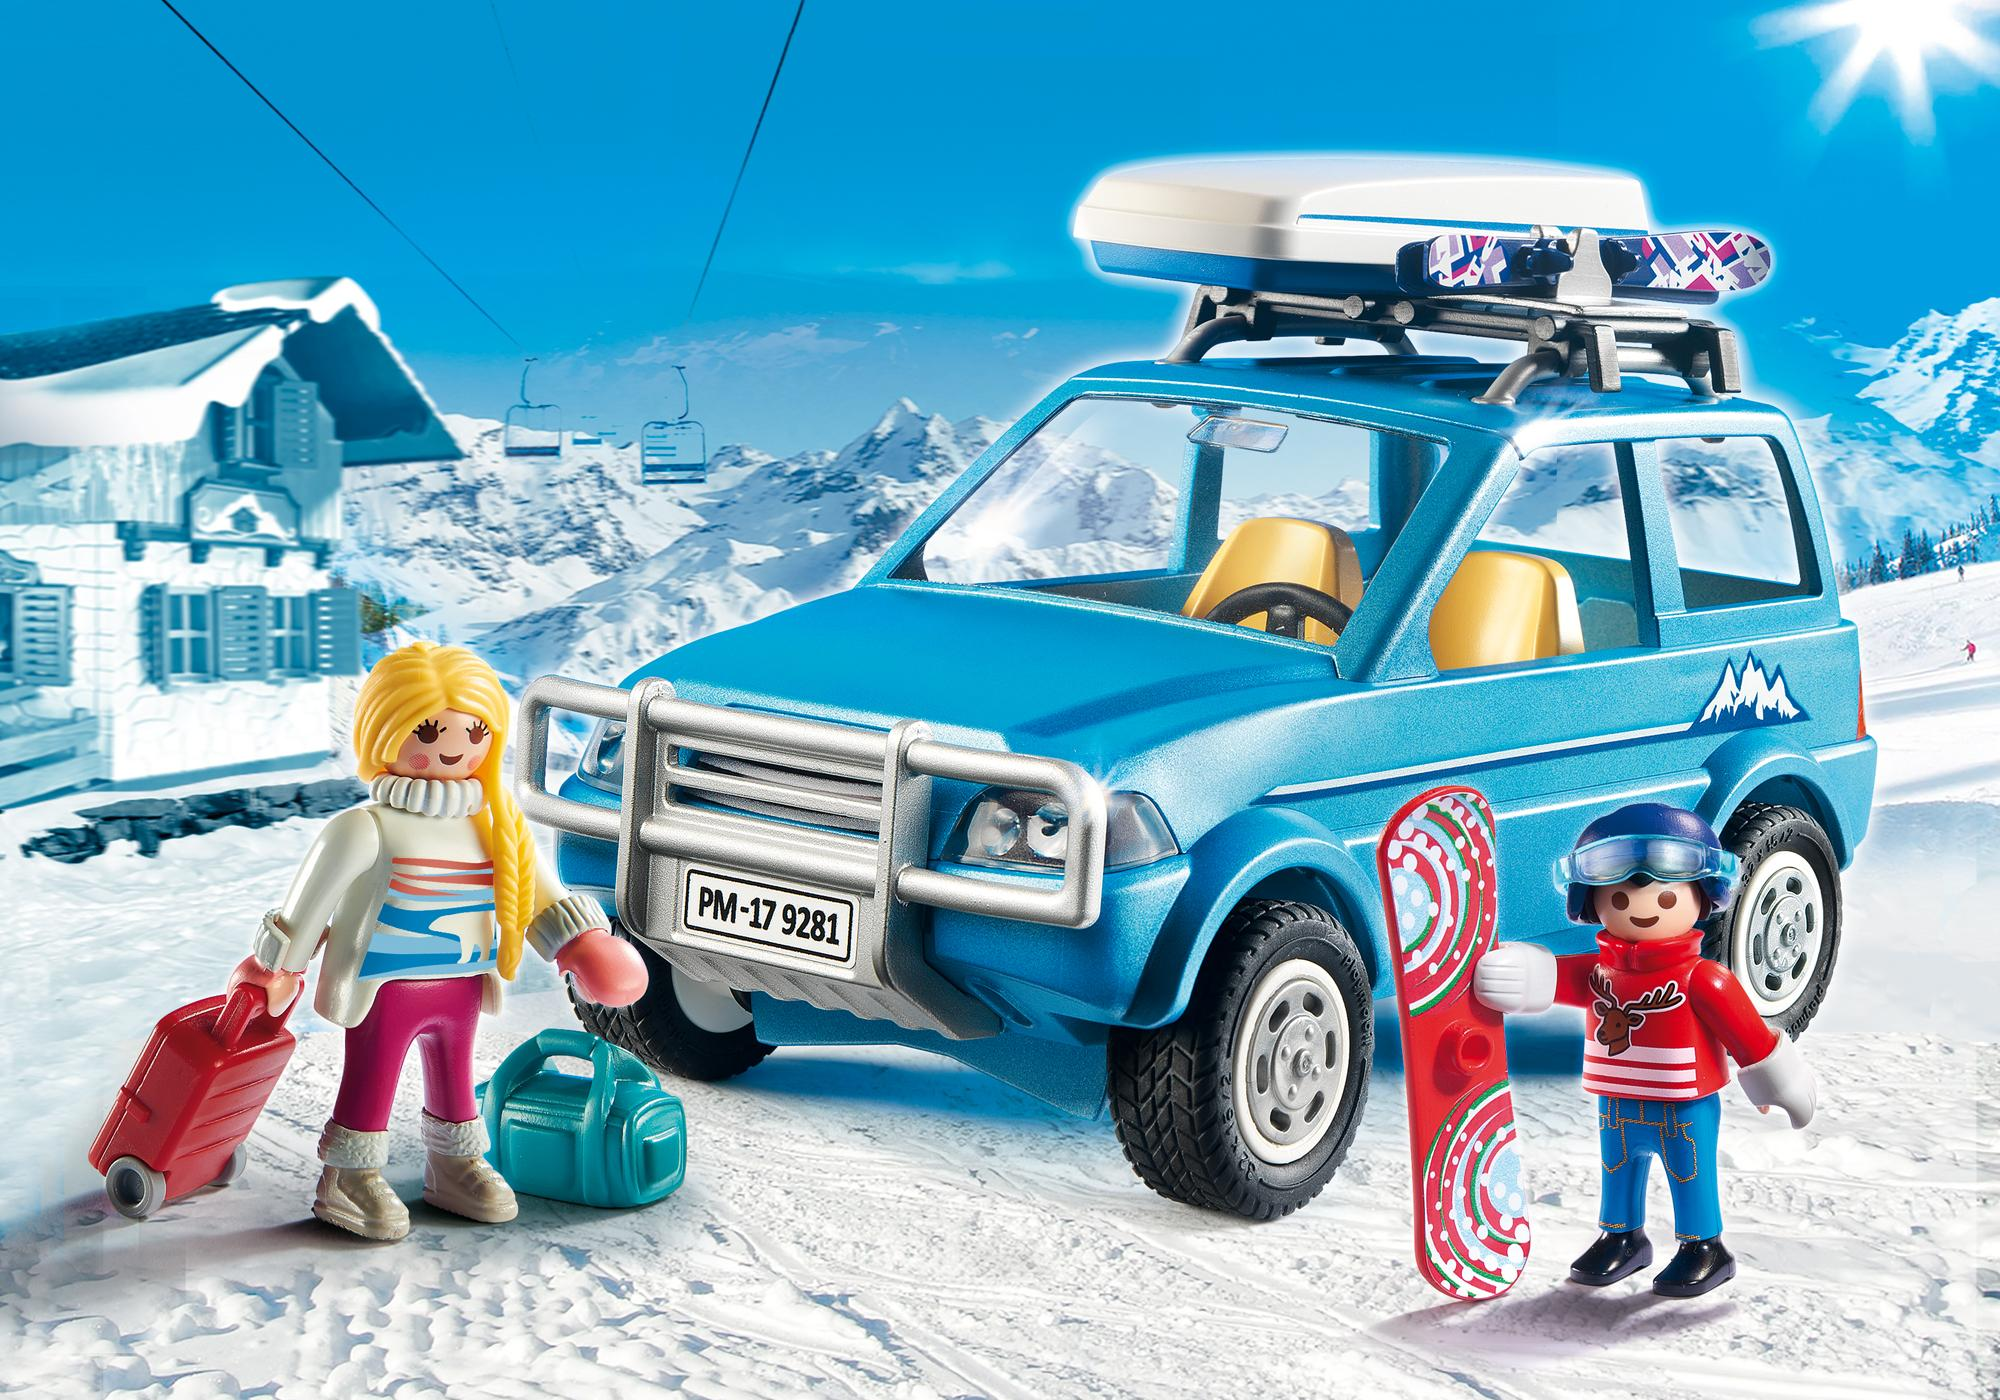 http://media.playmobil.com/i/playmobil/9281_product_detail